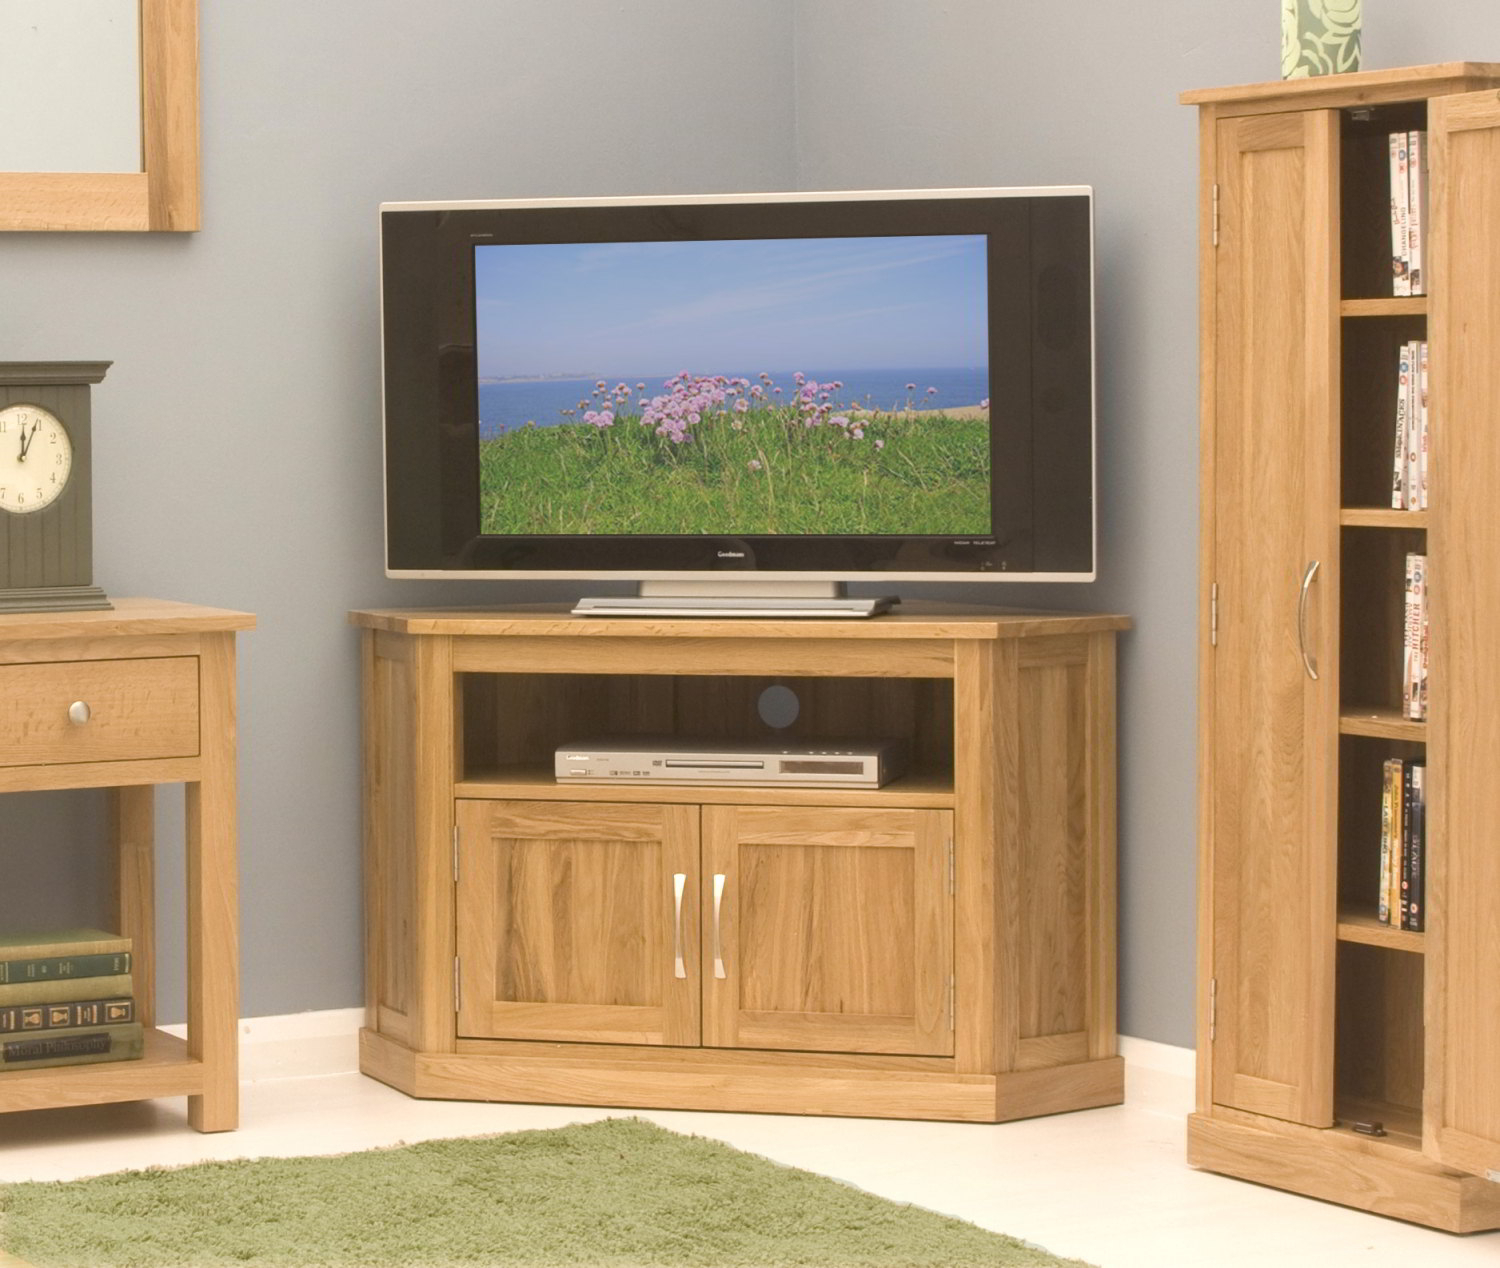 Conran Solid Oak Living Room Furniture Corner Television Intended For Corner Tv Cabinet With Hutch (View 13 of 15)